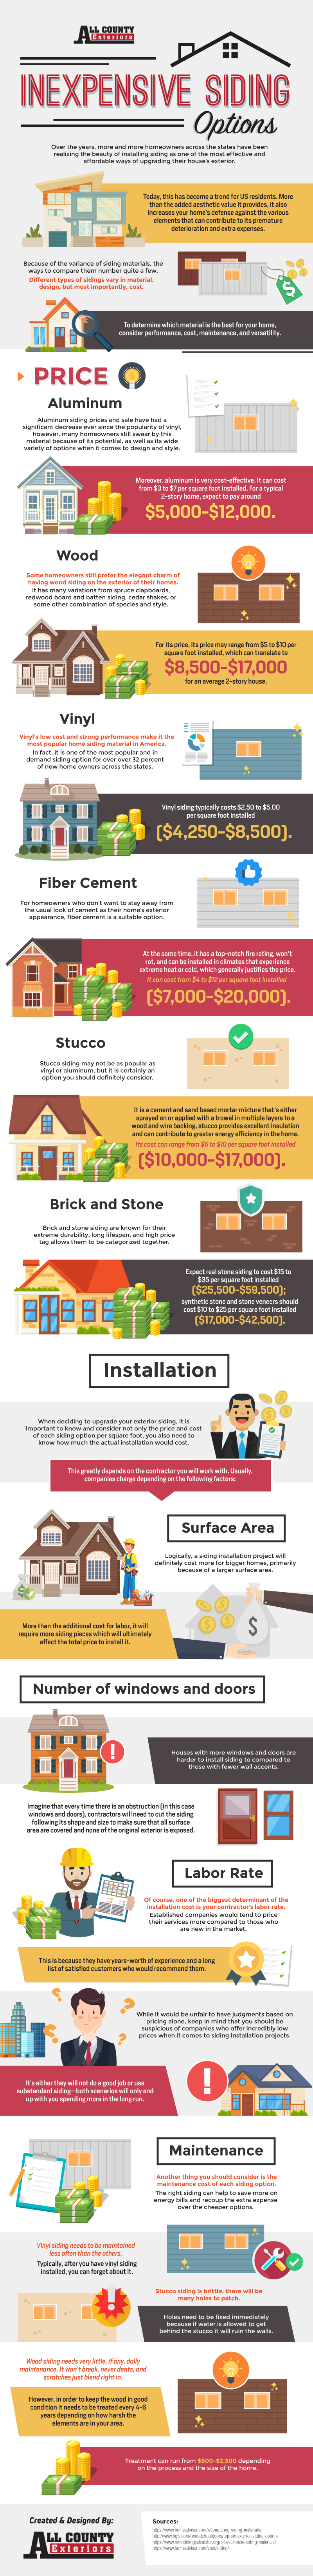 Inexpensive Siding Options Infographic All County